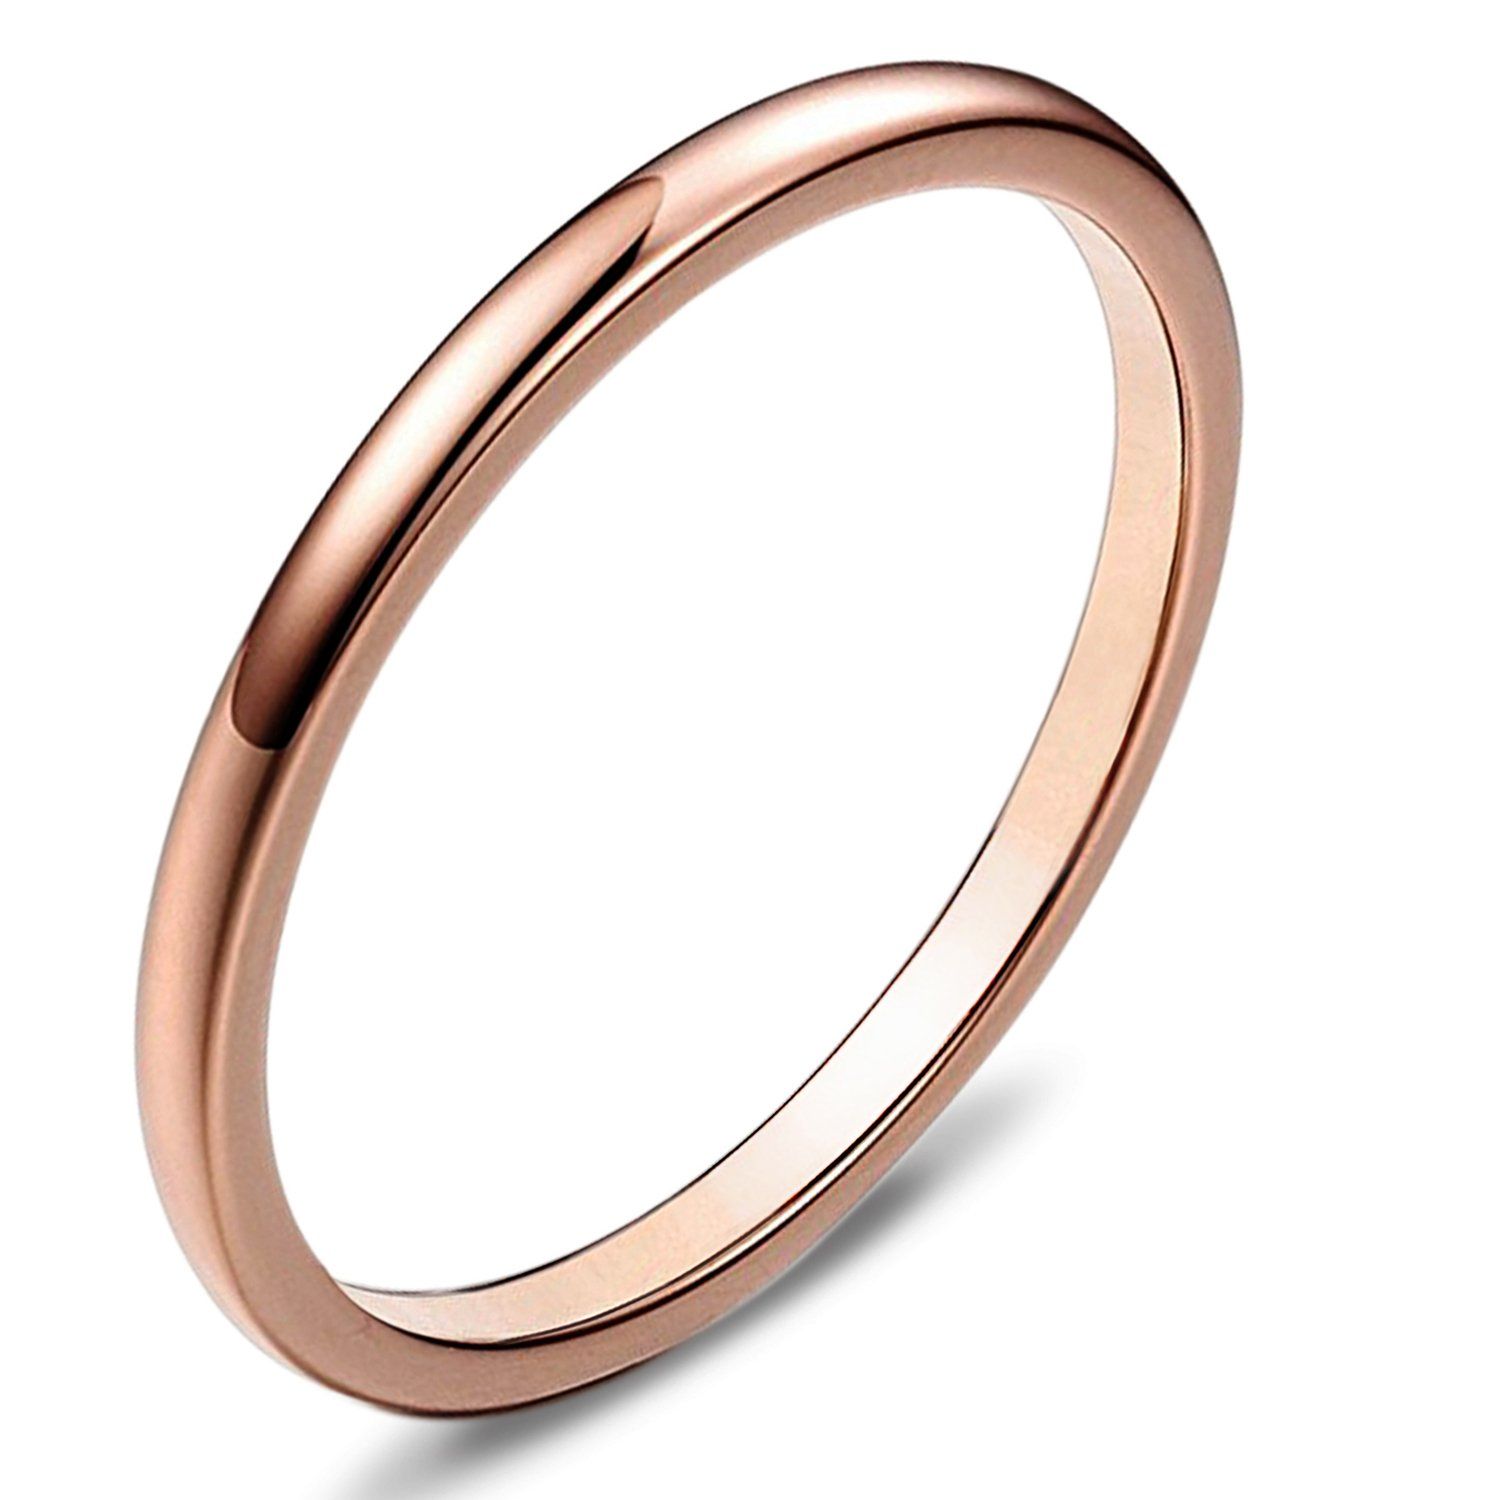 Sexbay Rose Gold Wedding Bands Tungsten Rings For Women 2mm Domed Engagement Promise Ring Comfort Fit Domed (8) by Sexbay (Image #1)